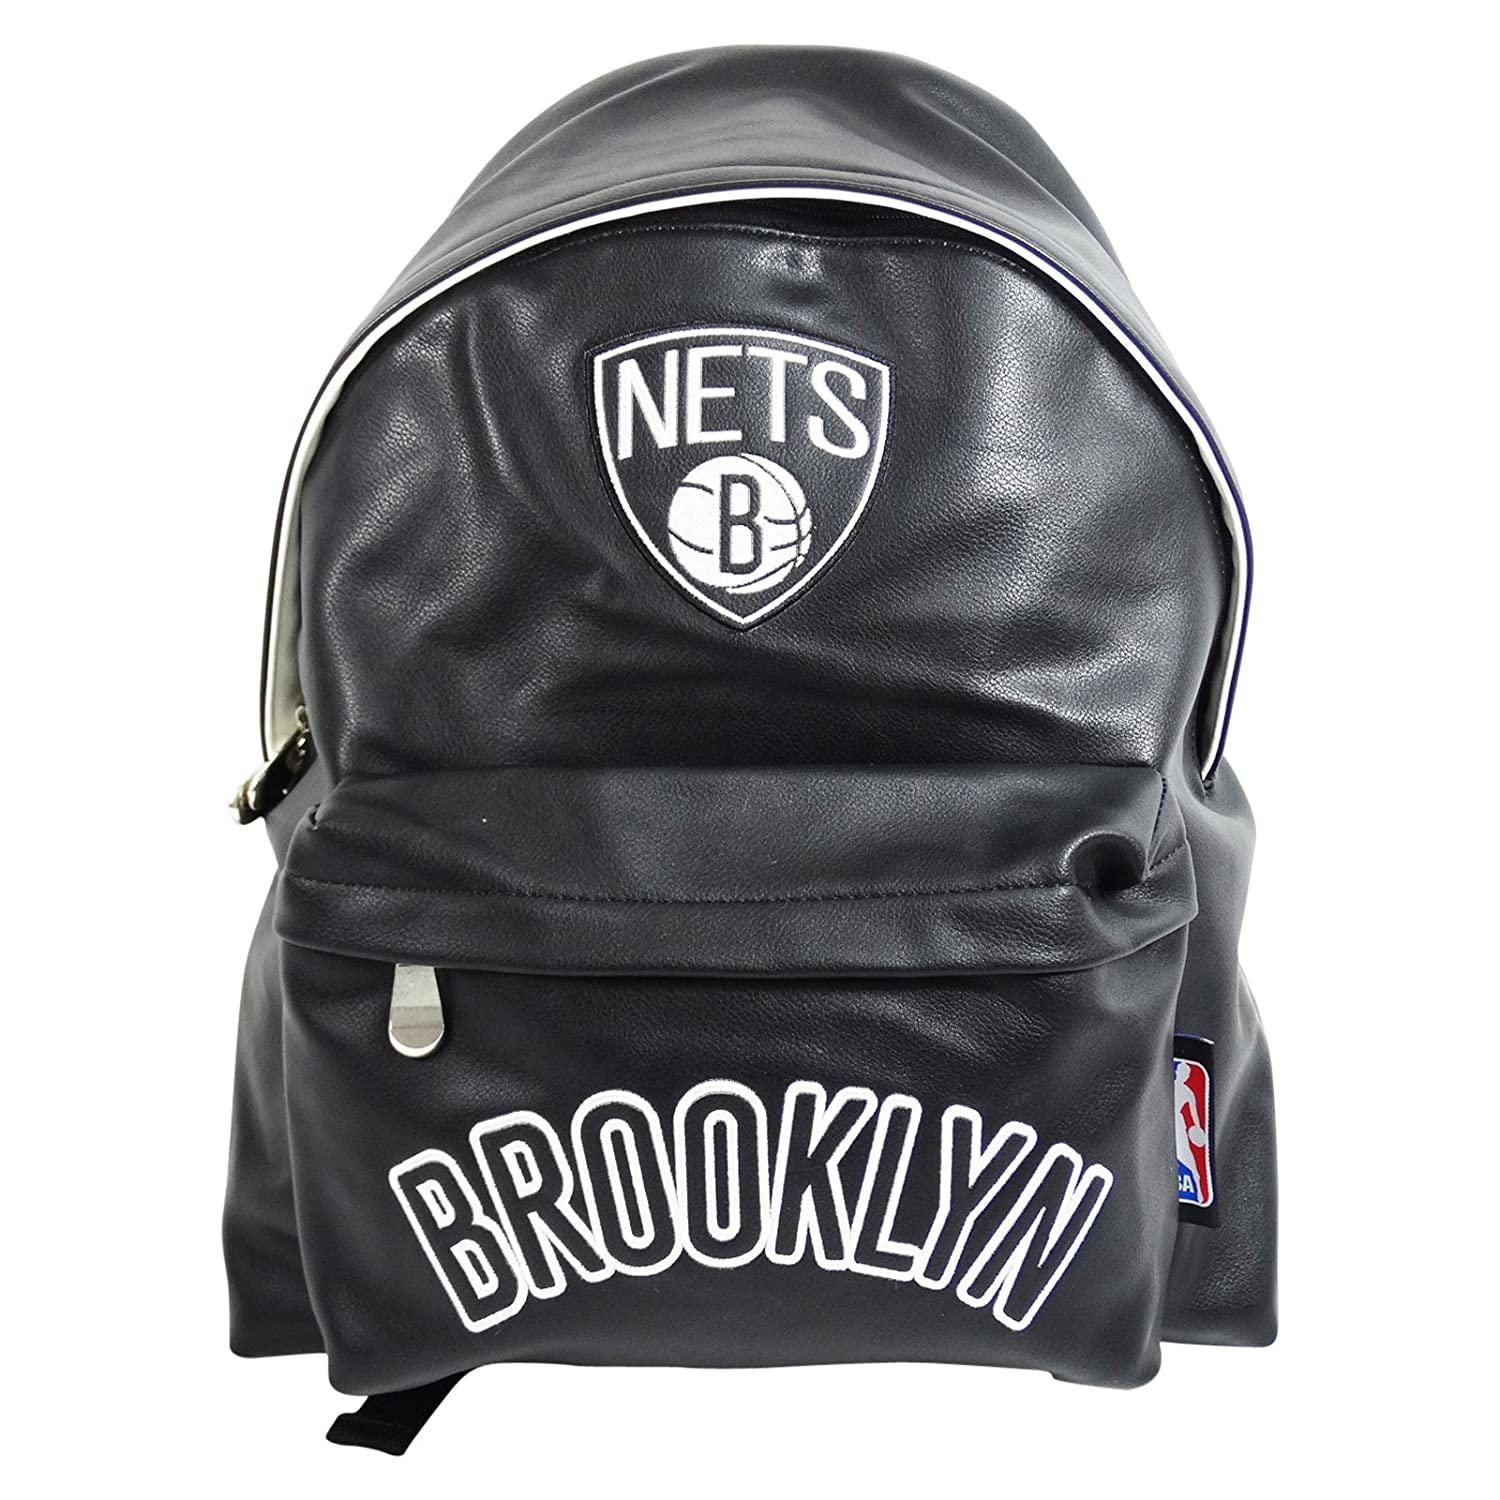 ed96b004a NBA Brooklyn Nets Mochilla Bolso Escolar: Amazon.es: Equipaje